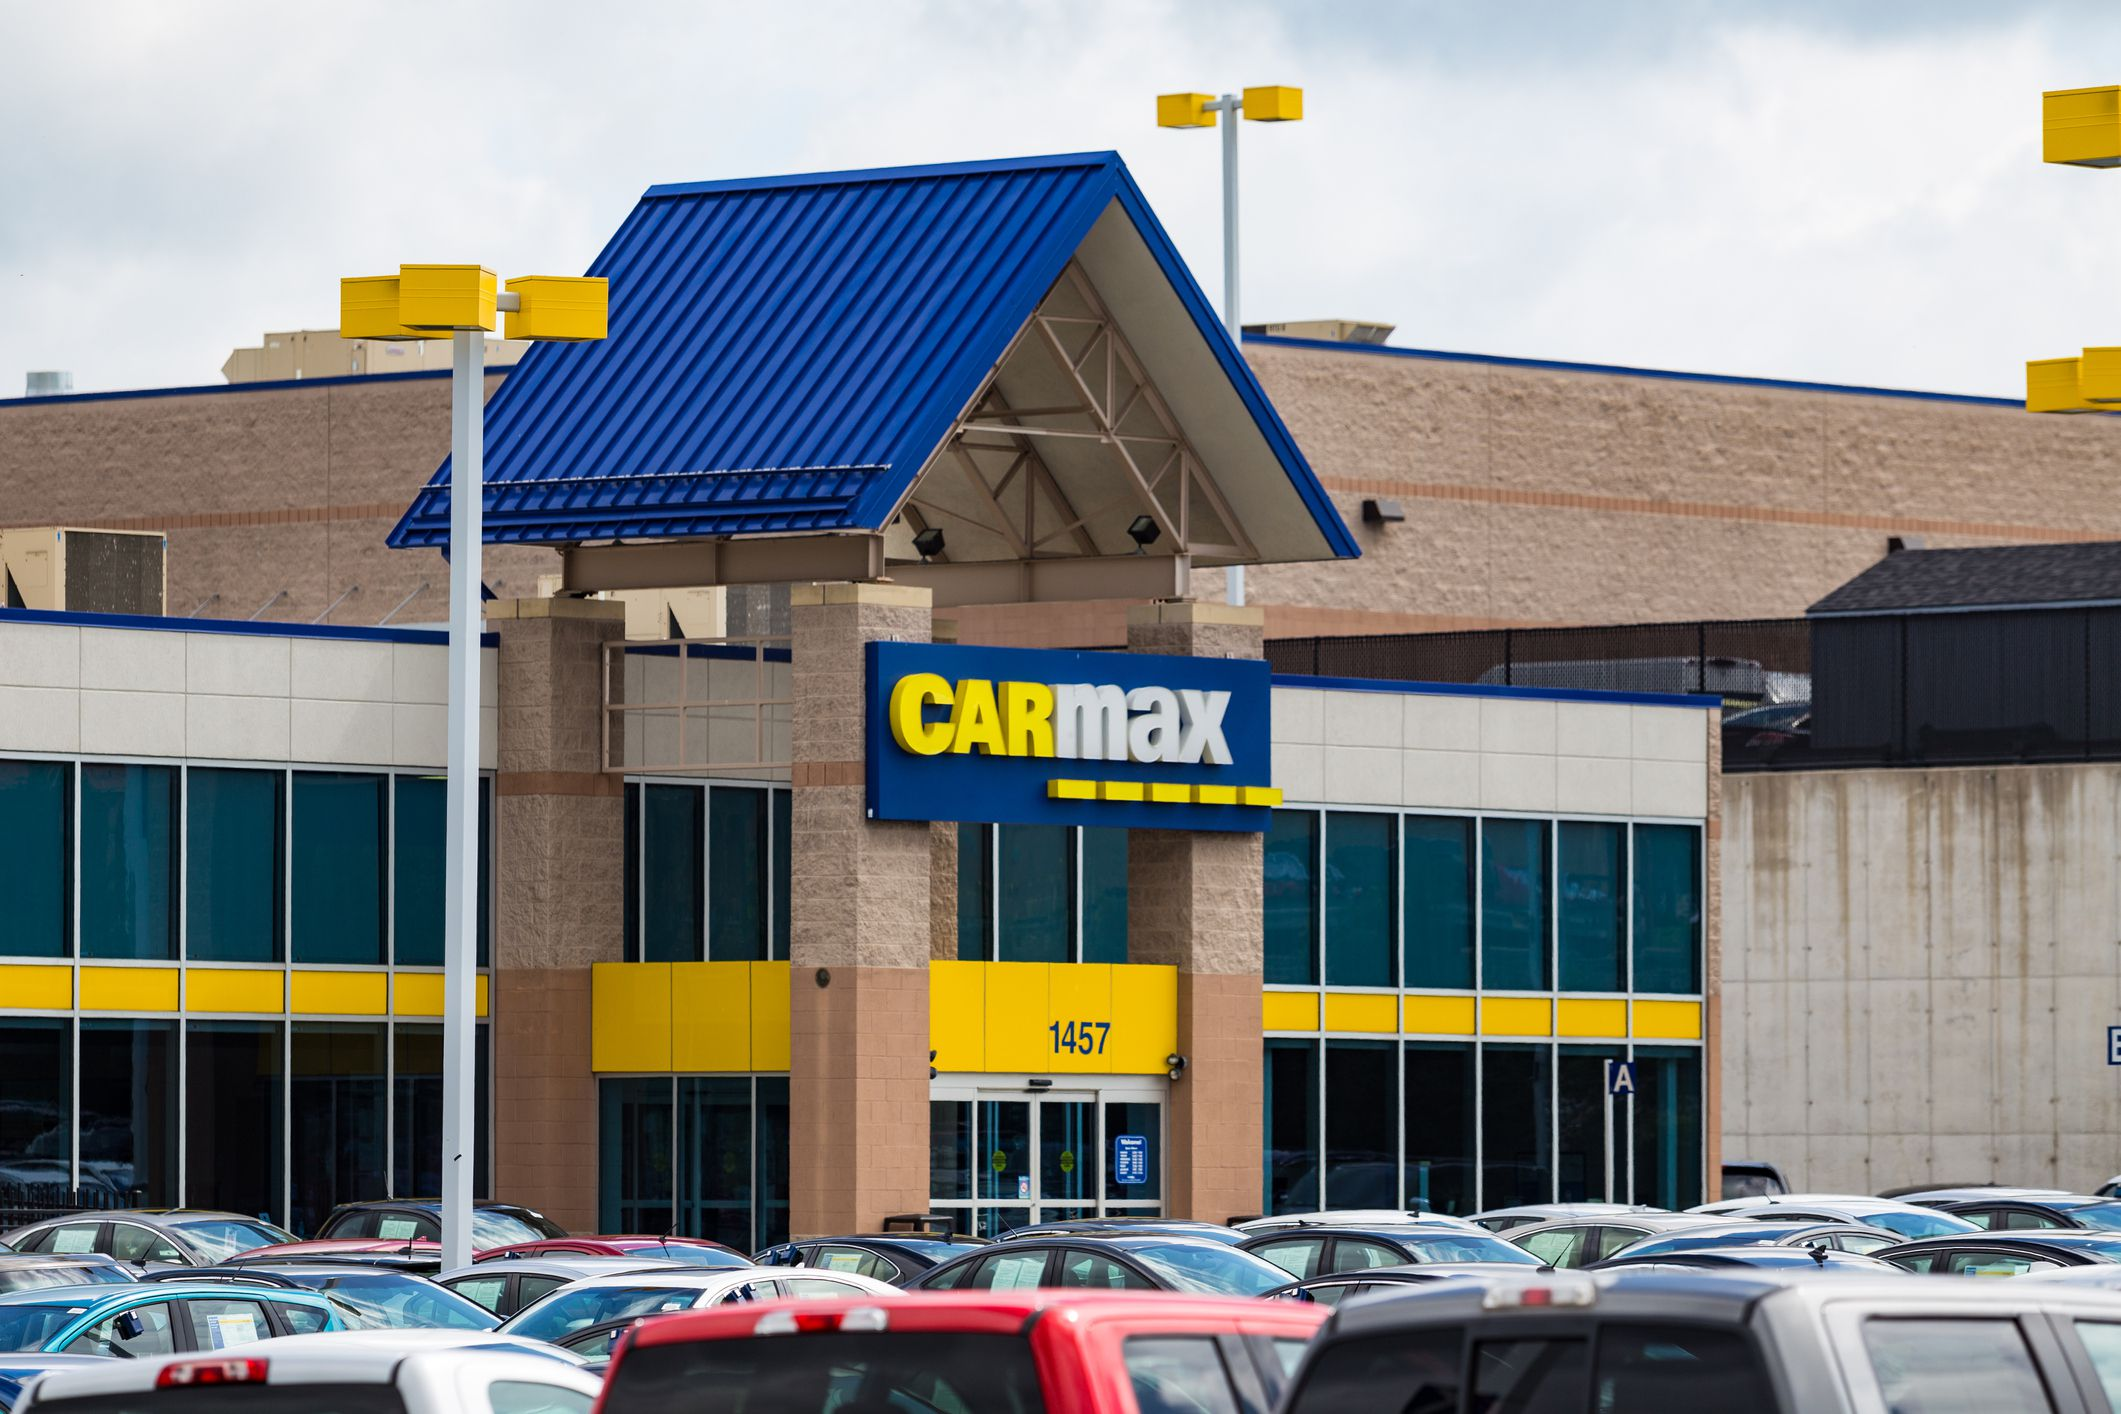 10 Things to Know About CarMax